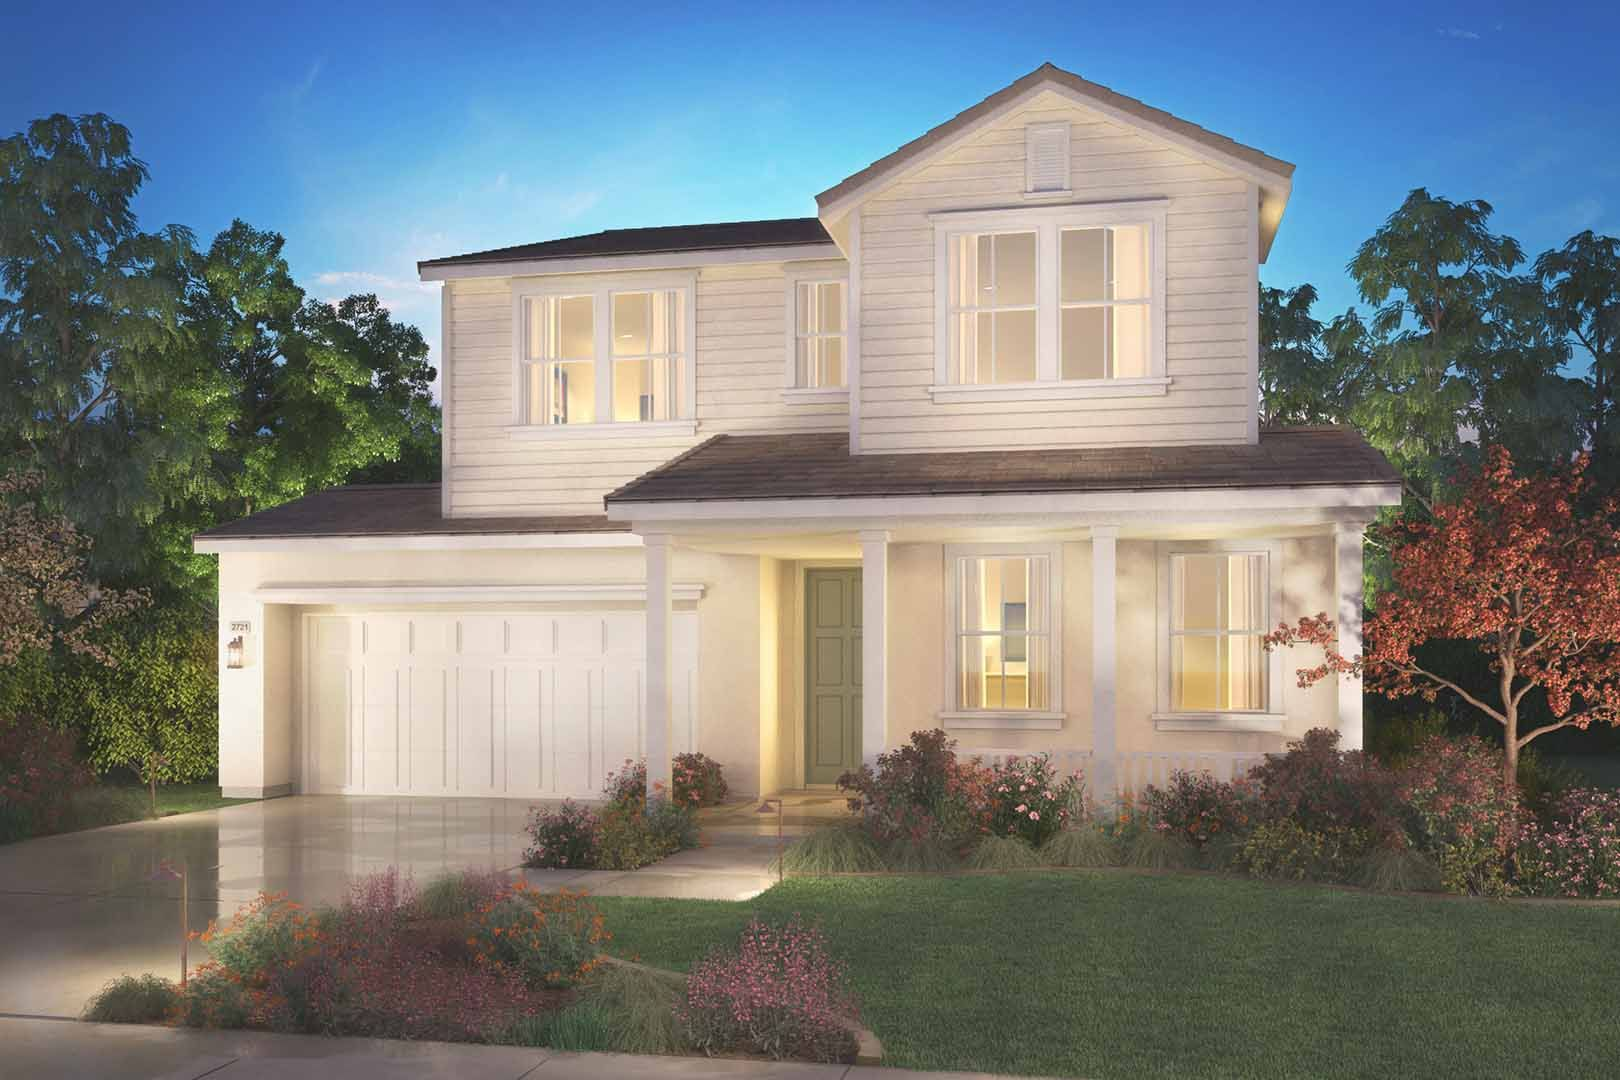 Single Family for Sale at Redstone - Residence 2 8019 Claret Court Vacaville, California 95687 United States